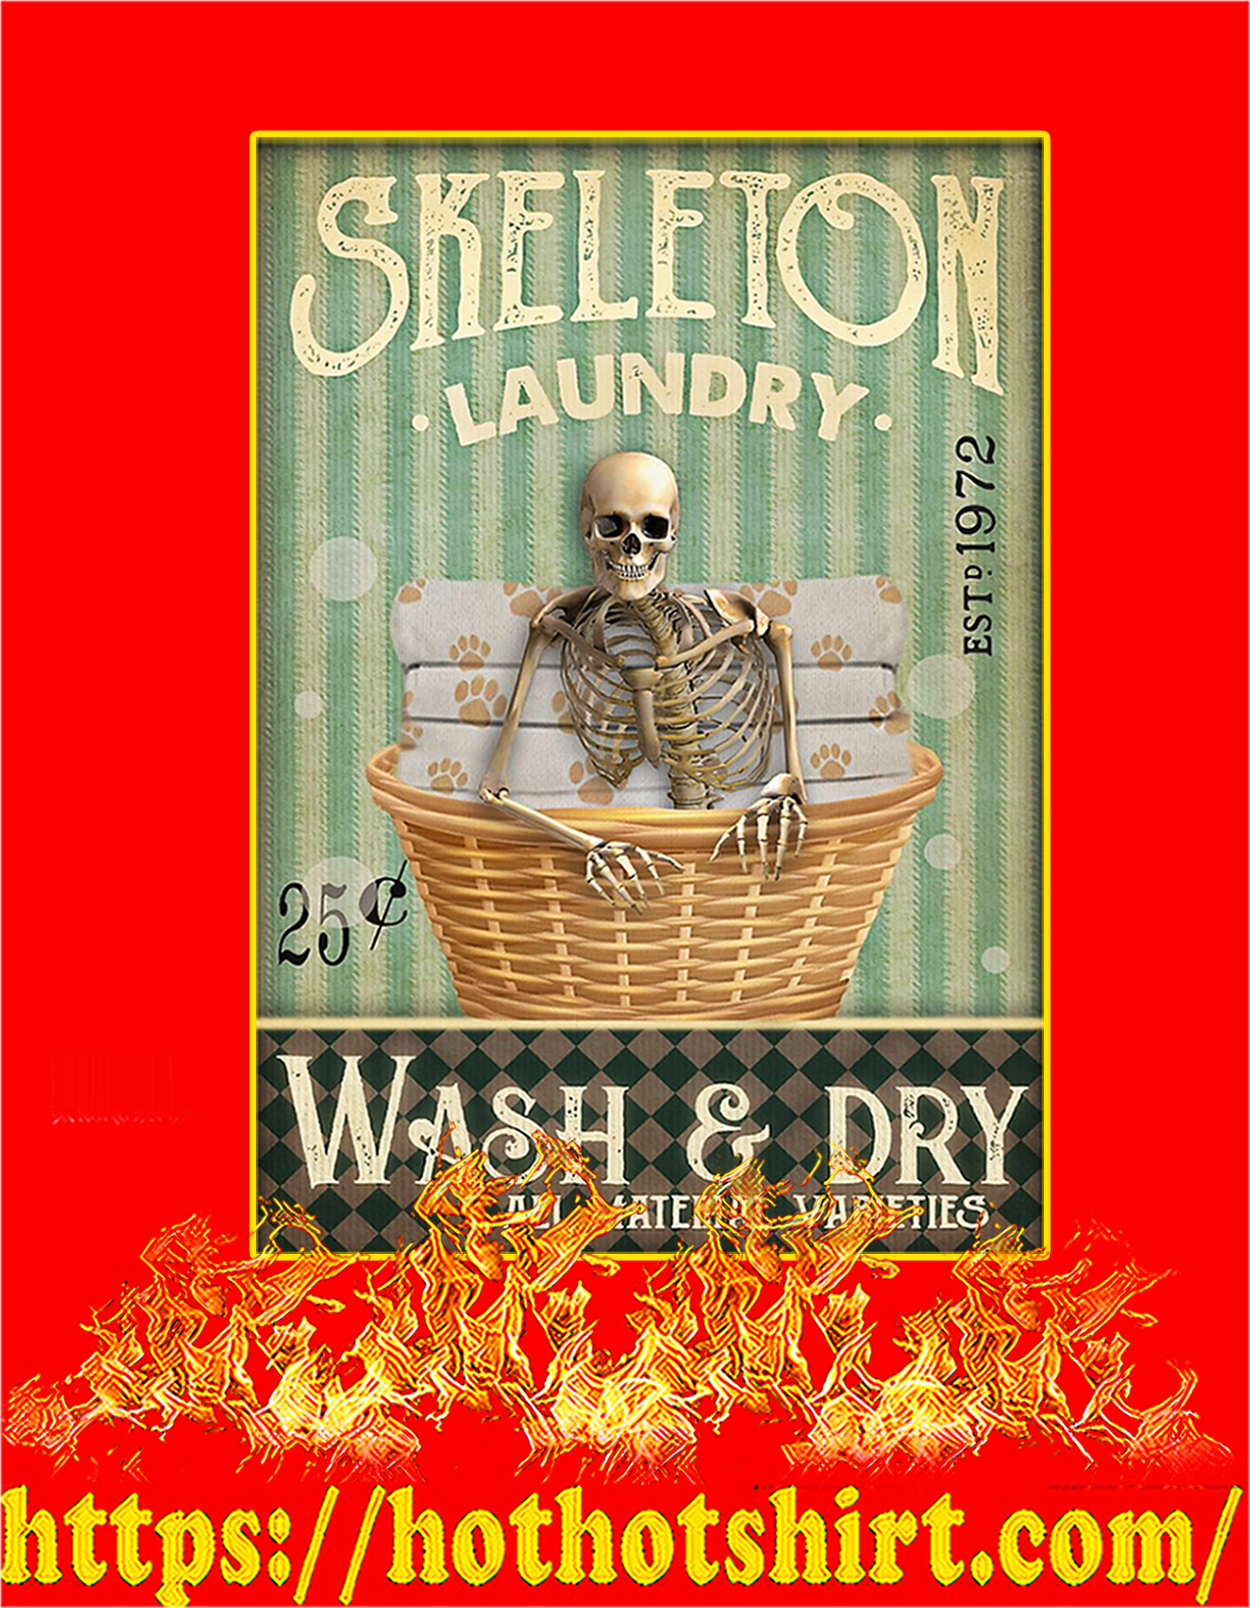 Skeleton laundry wash and dry poster - A3